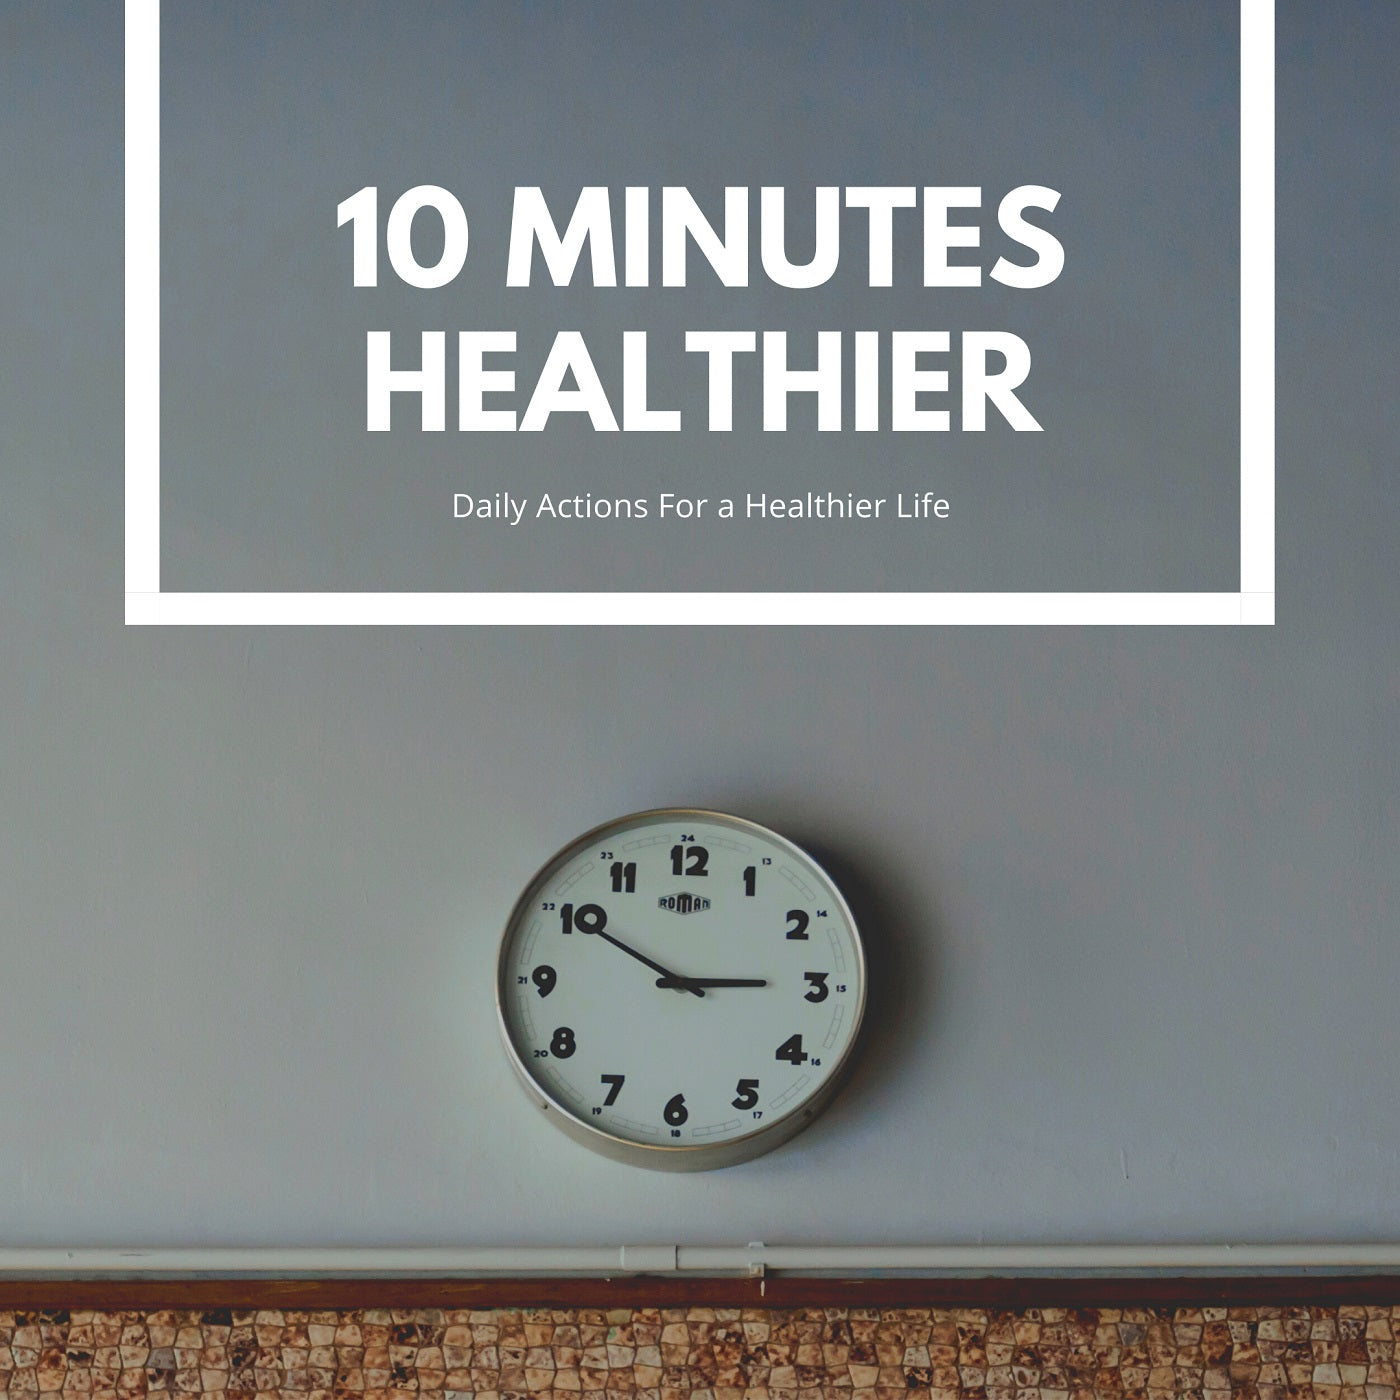 10 Minutes Healthier:  Our WEAKly Challenge